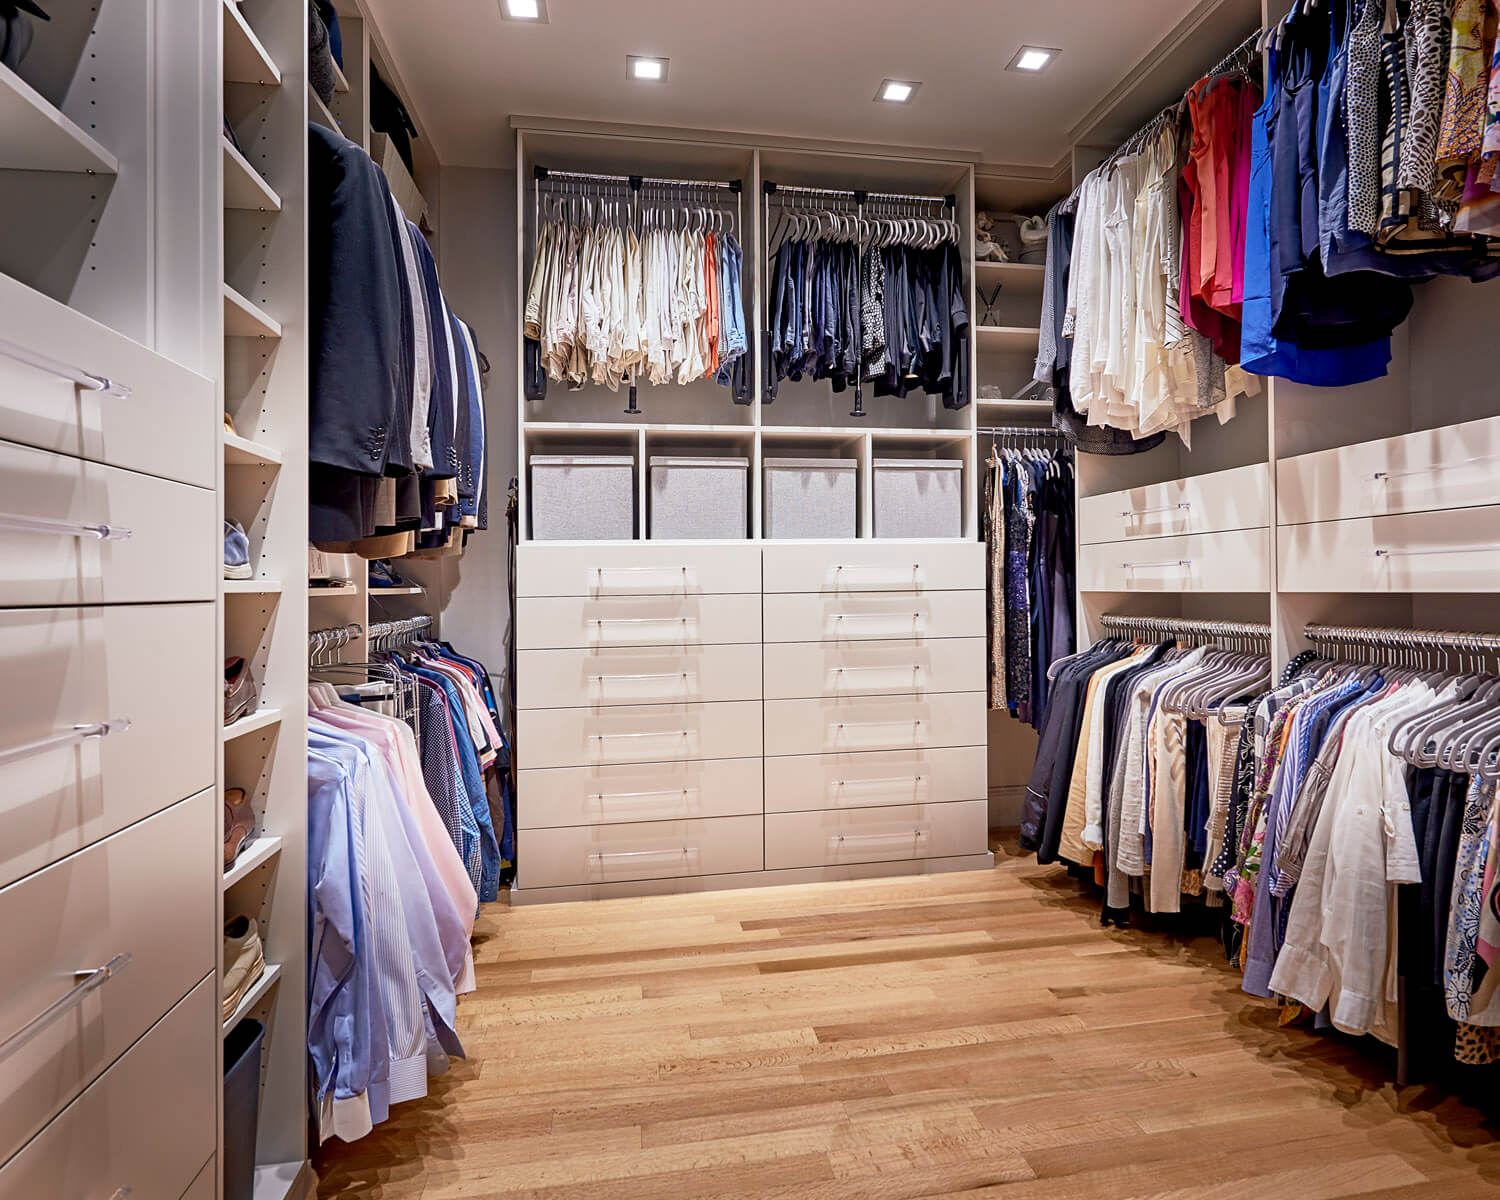 The Perfect Closet Includes Custom Cabinetry And Clean Design